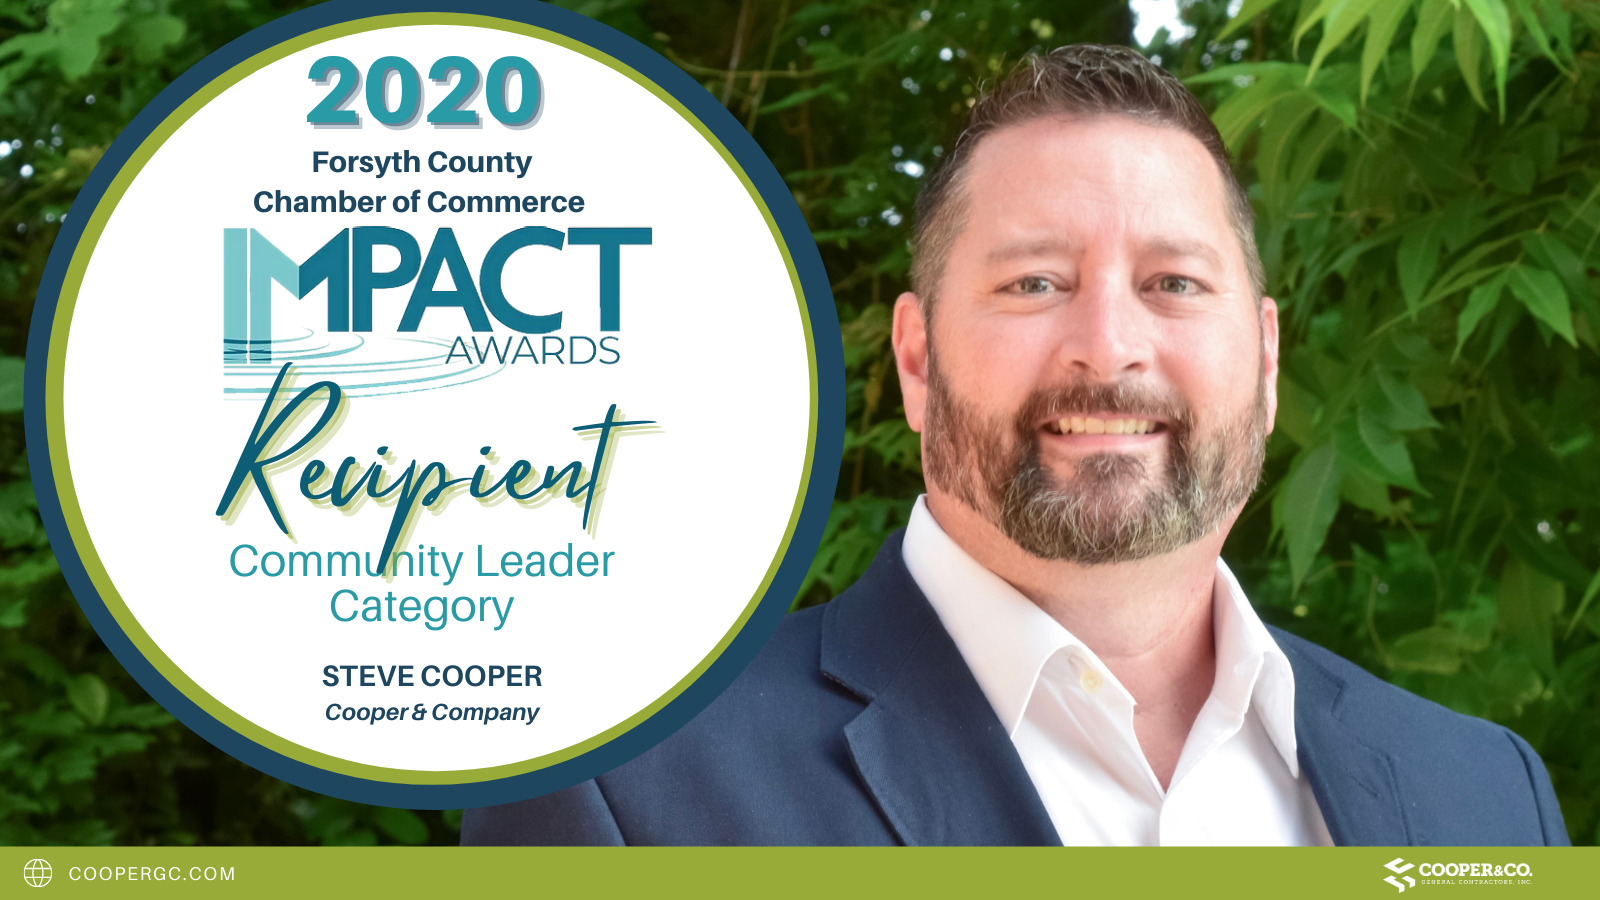 Steve Cooper recognized at 2020 Forsyth County Impact Awards